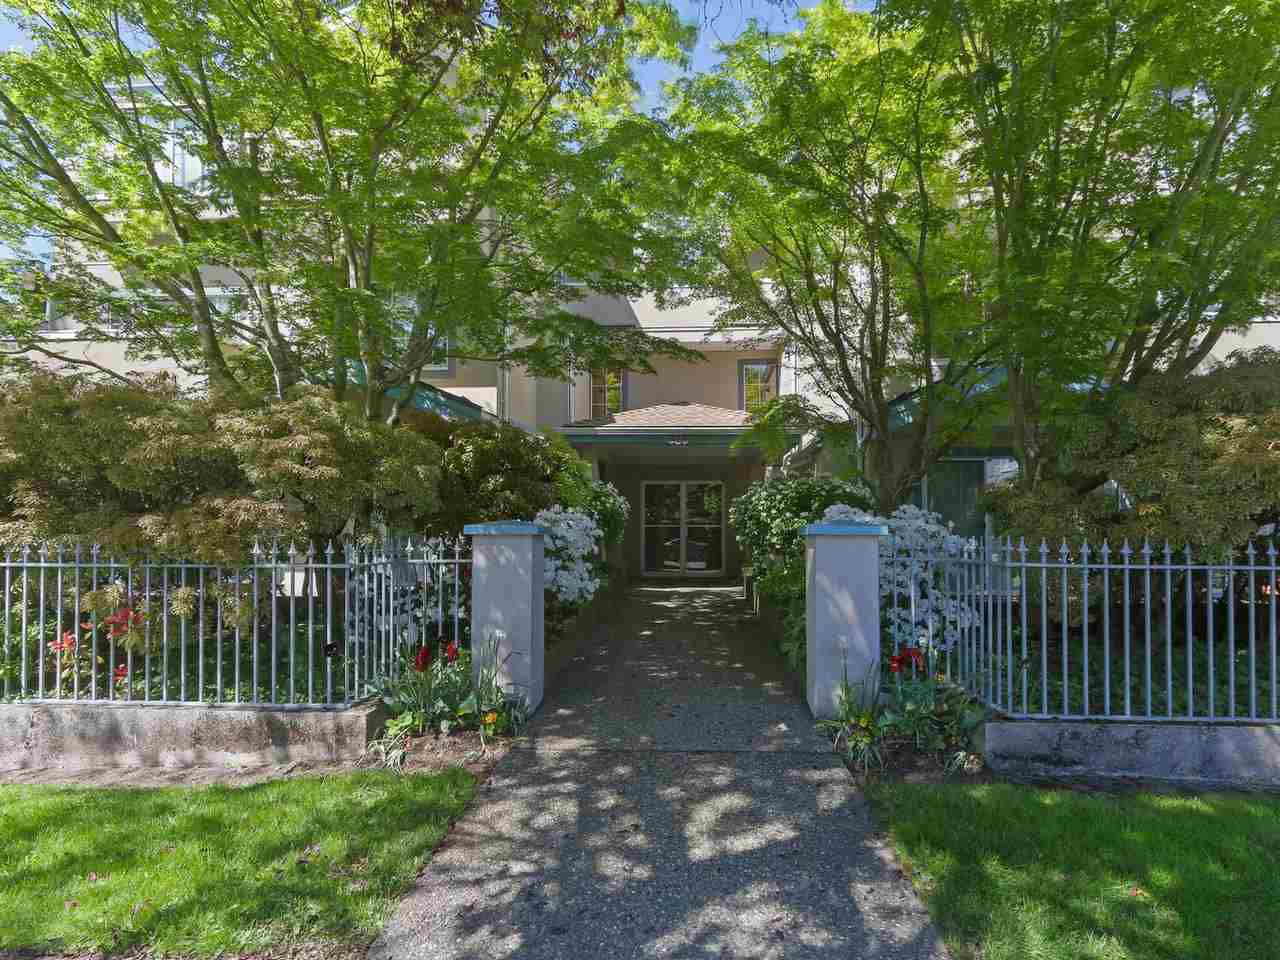 """Main Photo: 104 825 W 15TH Avenue in Vancouver: Fairview VW Condo for sale in """"The Harrod"""" (Vancouver West)  : MLS®# R2366415"""